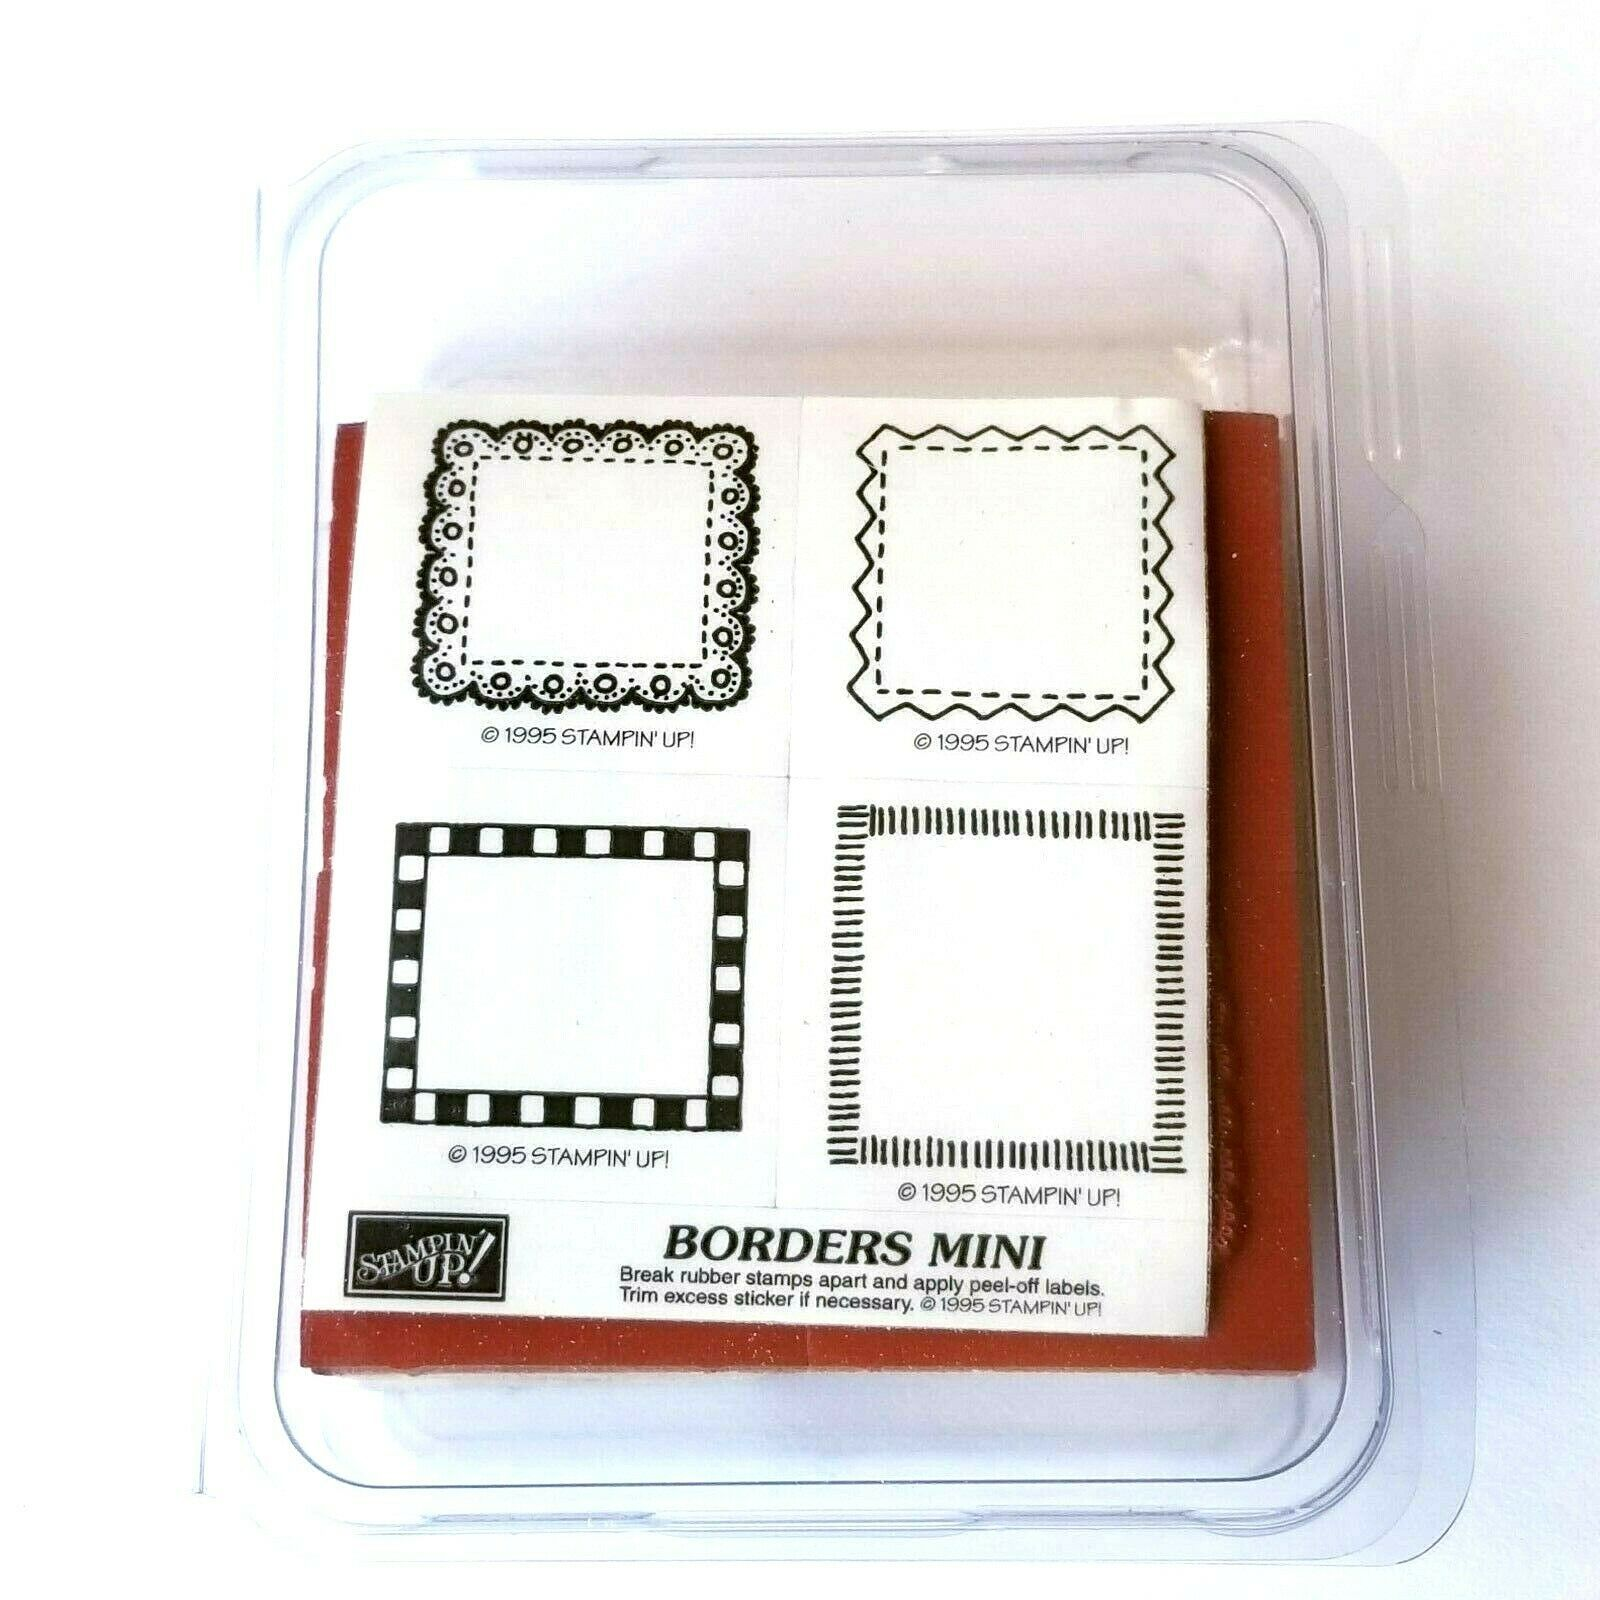 Stampin Up Stamps Set Borders Mini Set Of 4 Rubber Stamps 1995 - $11.69